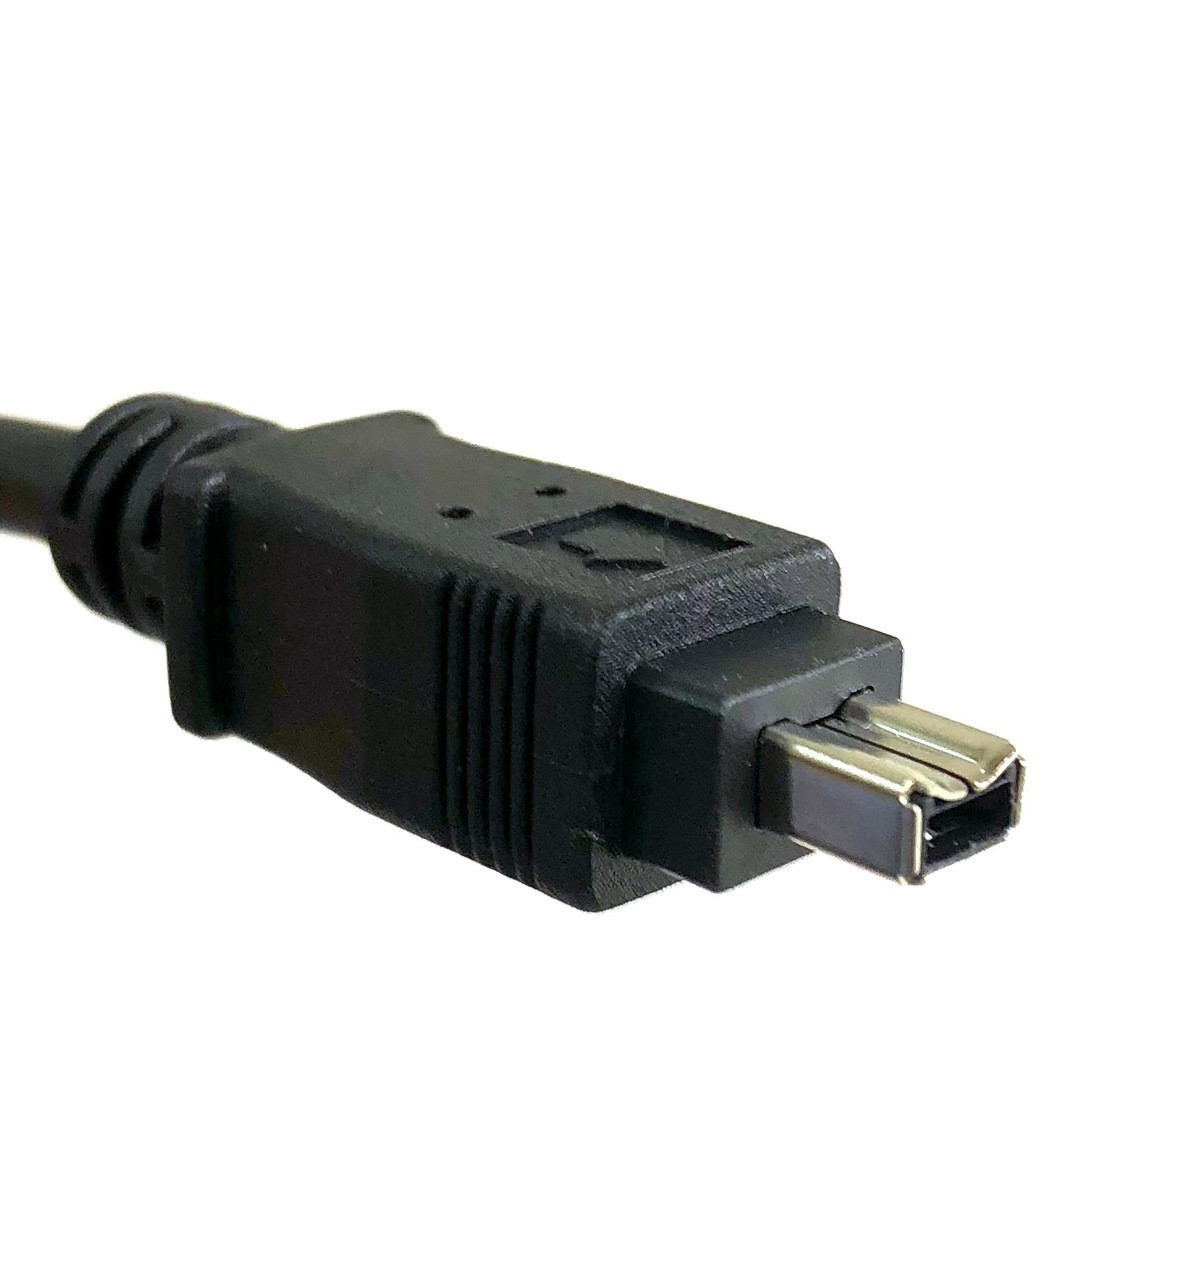 Firewire Cable 6 Pin to 4 Pin - 10ft